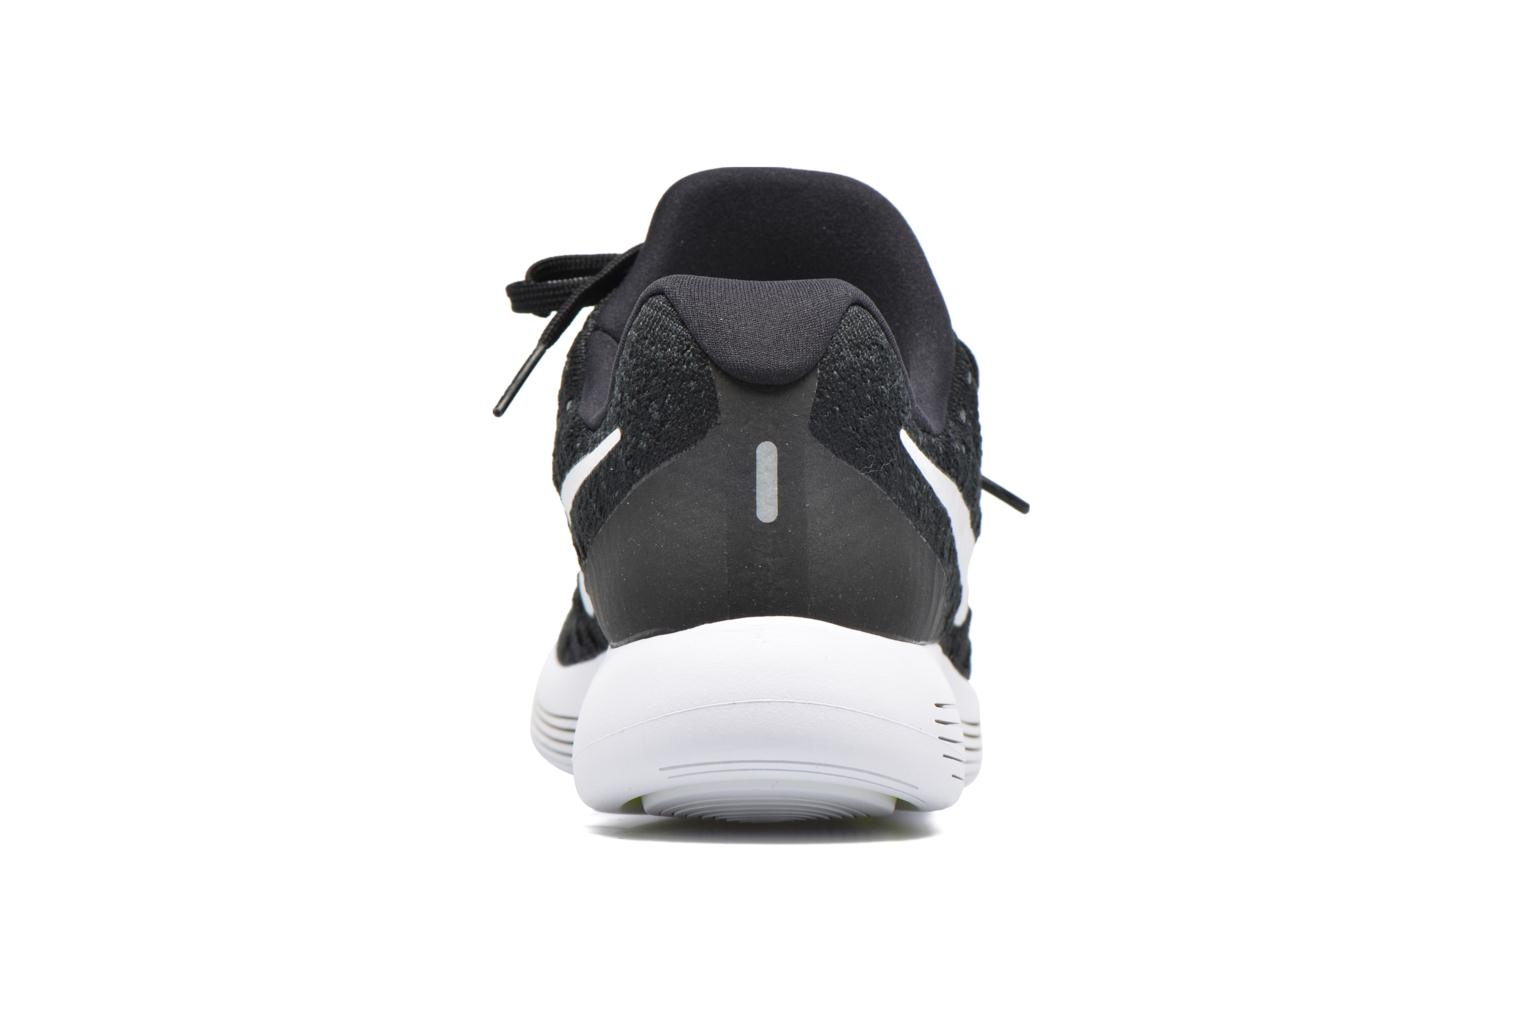 Nike Lunarepic Low Flyknit 2 Black/white-anthracite